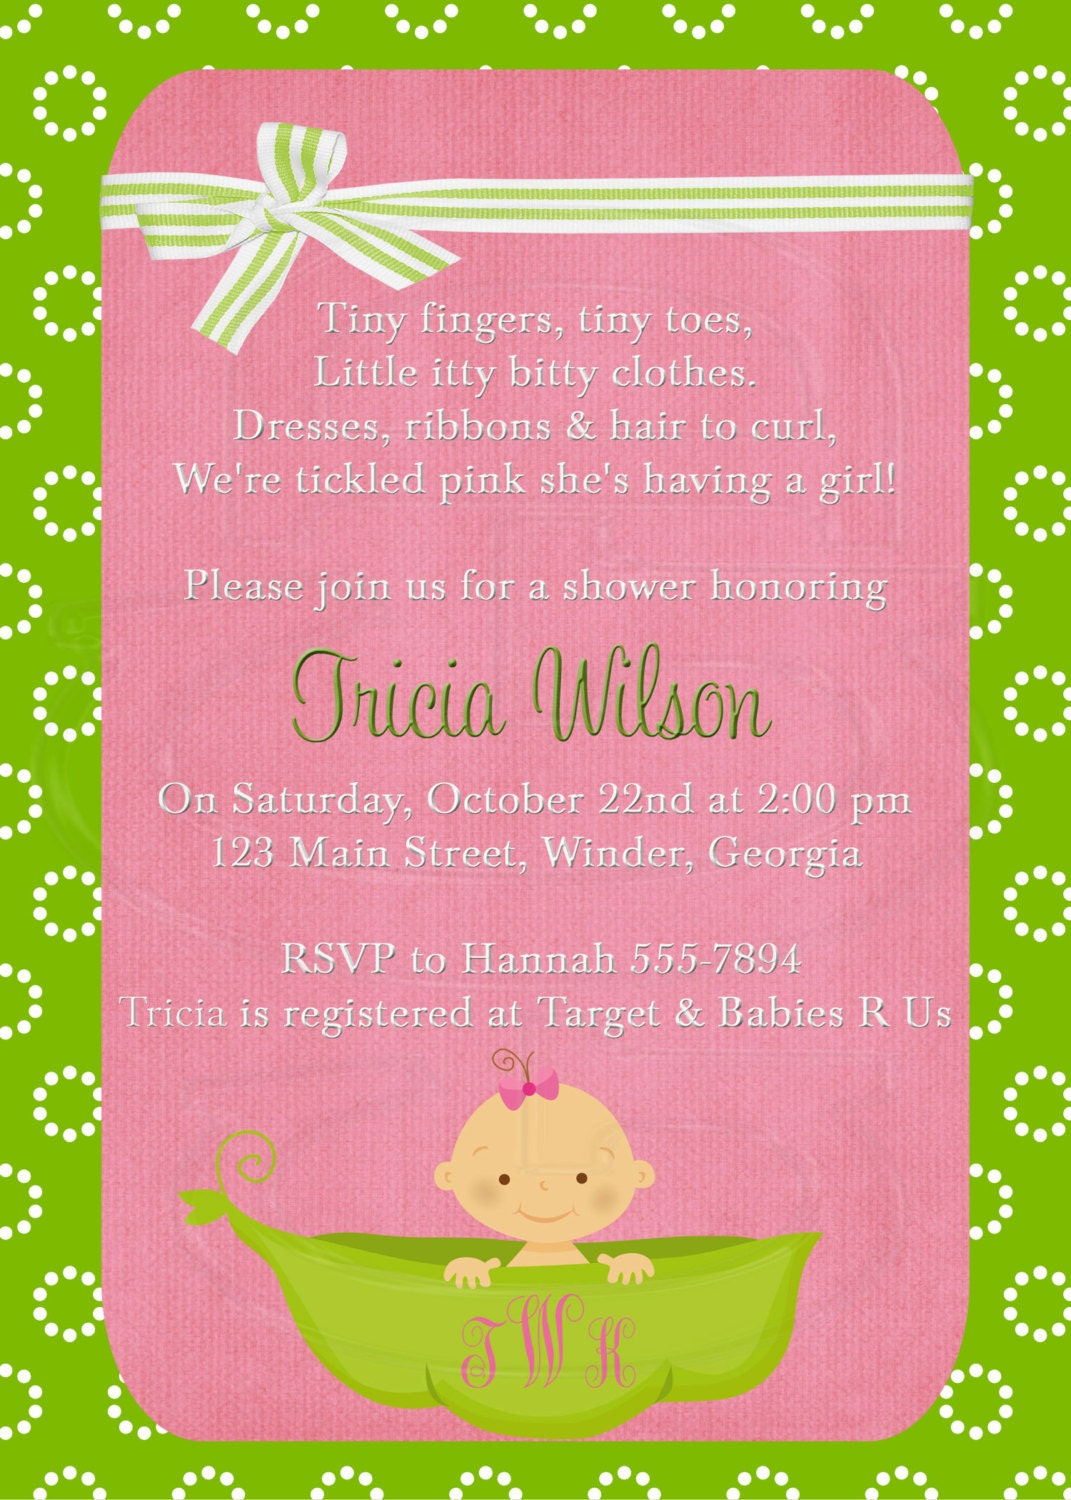 baby shower invitation or baby sprinkle for 2nd or 3rd child